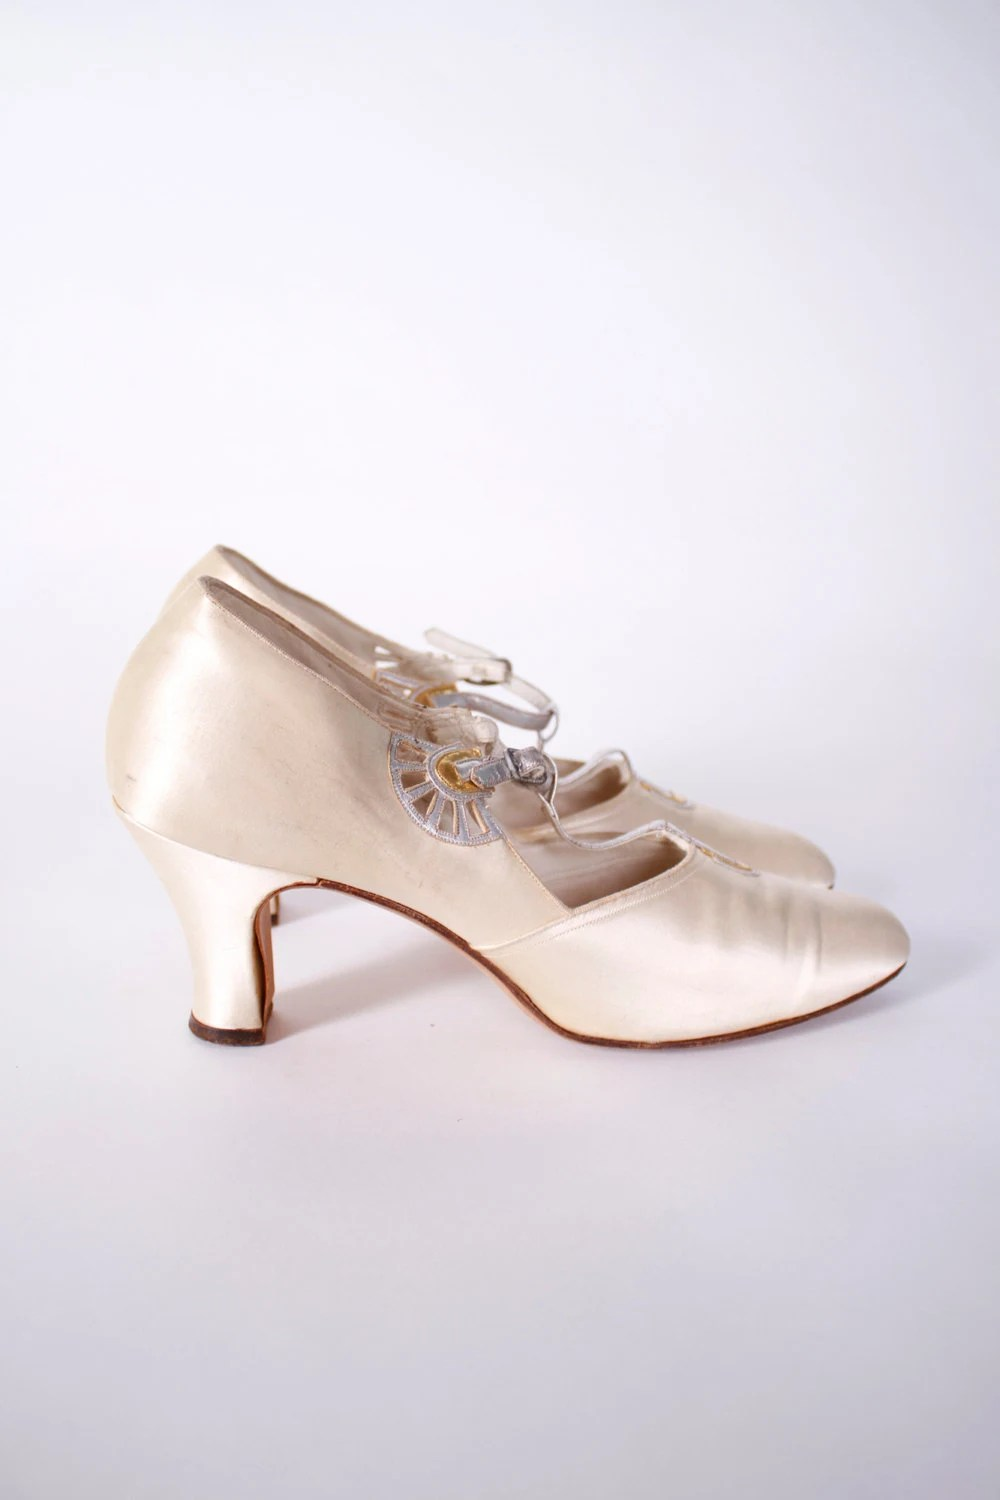 Vintage 1920s Shoes Ivory Satin Art Deco Dancing Slippers